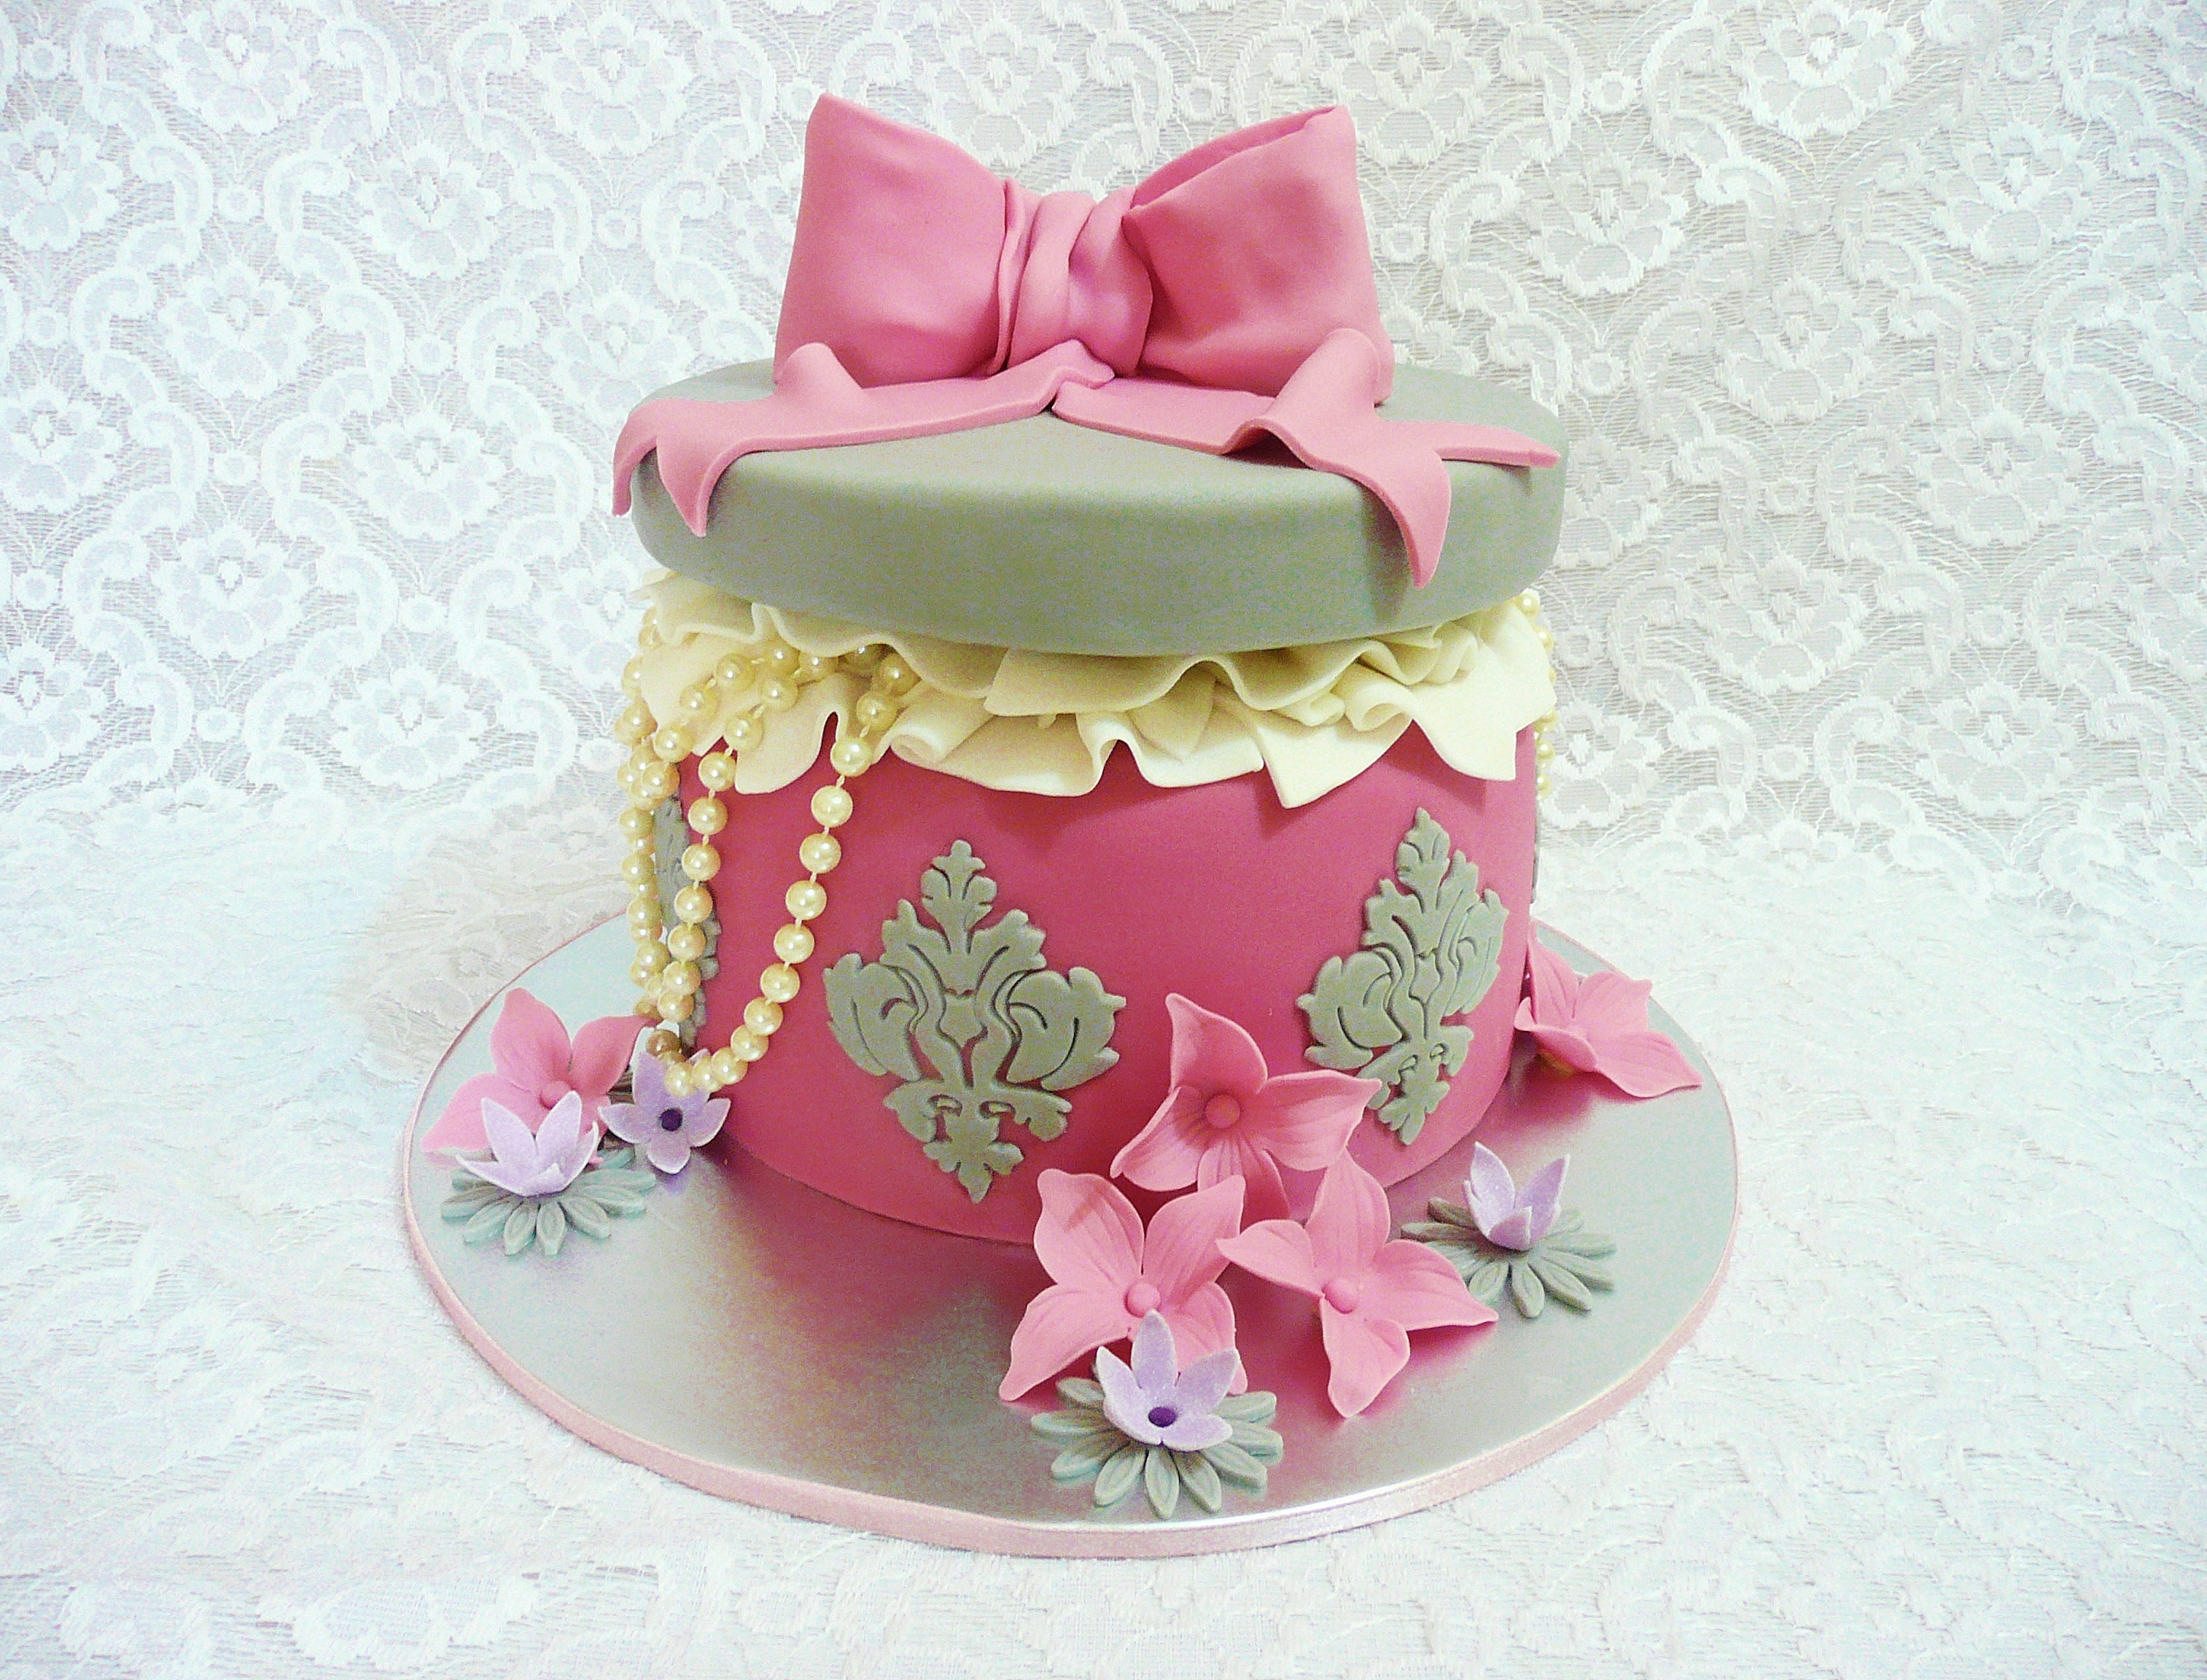 Fia sweet ideas cupcakes cakes party accessories - Jewel cake decorations ...